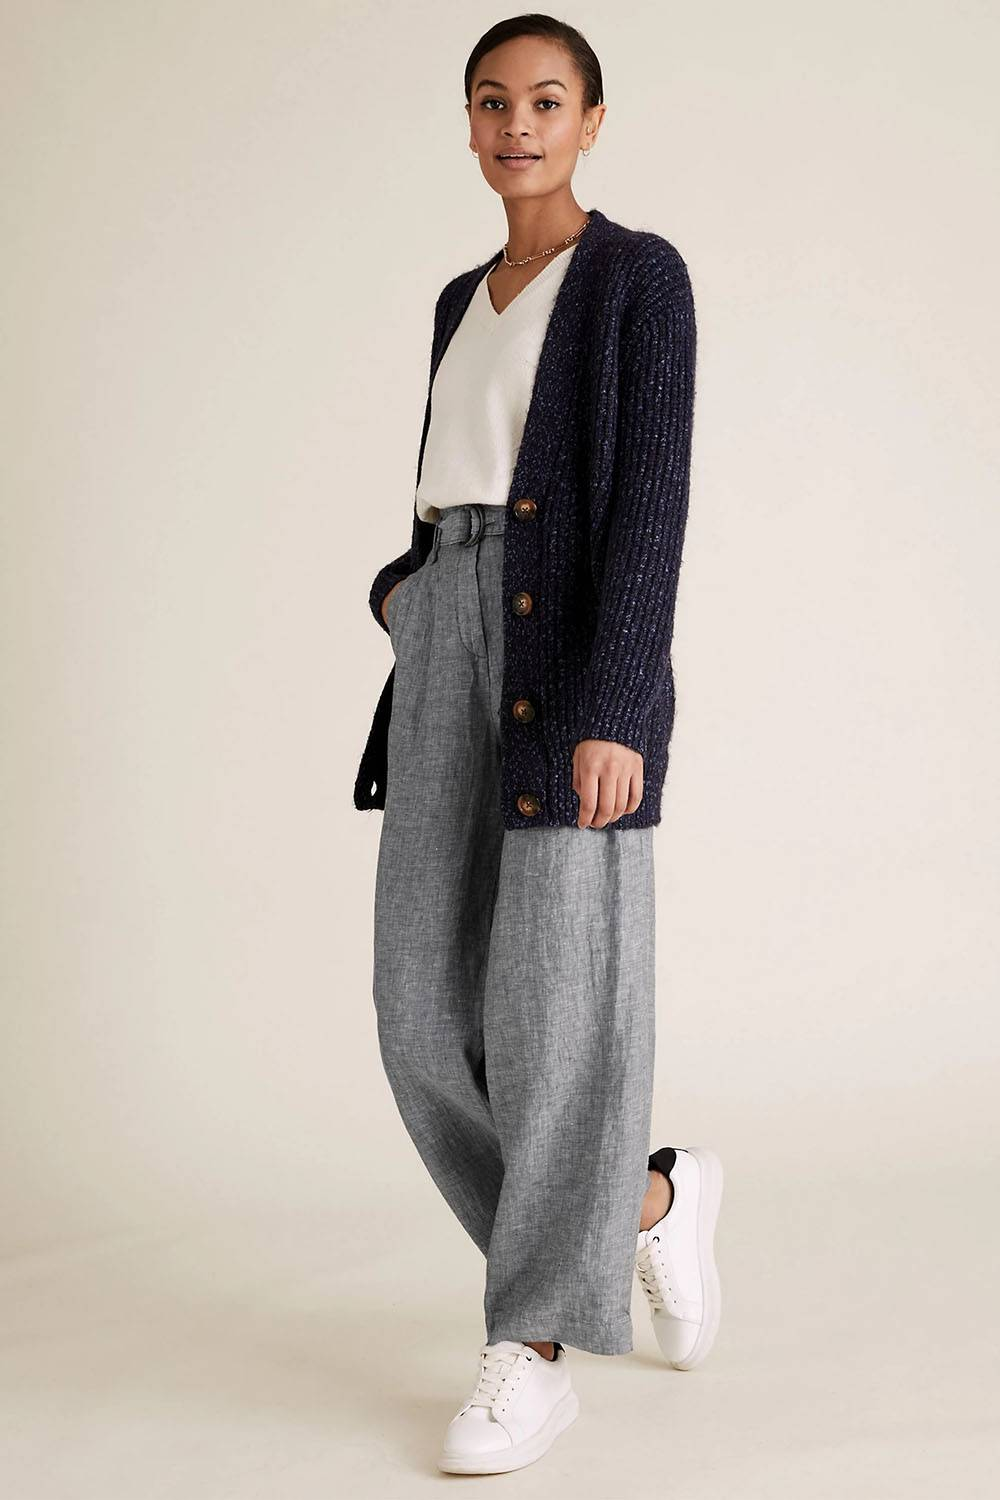 marks spencer rap concert baggy trousers